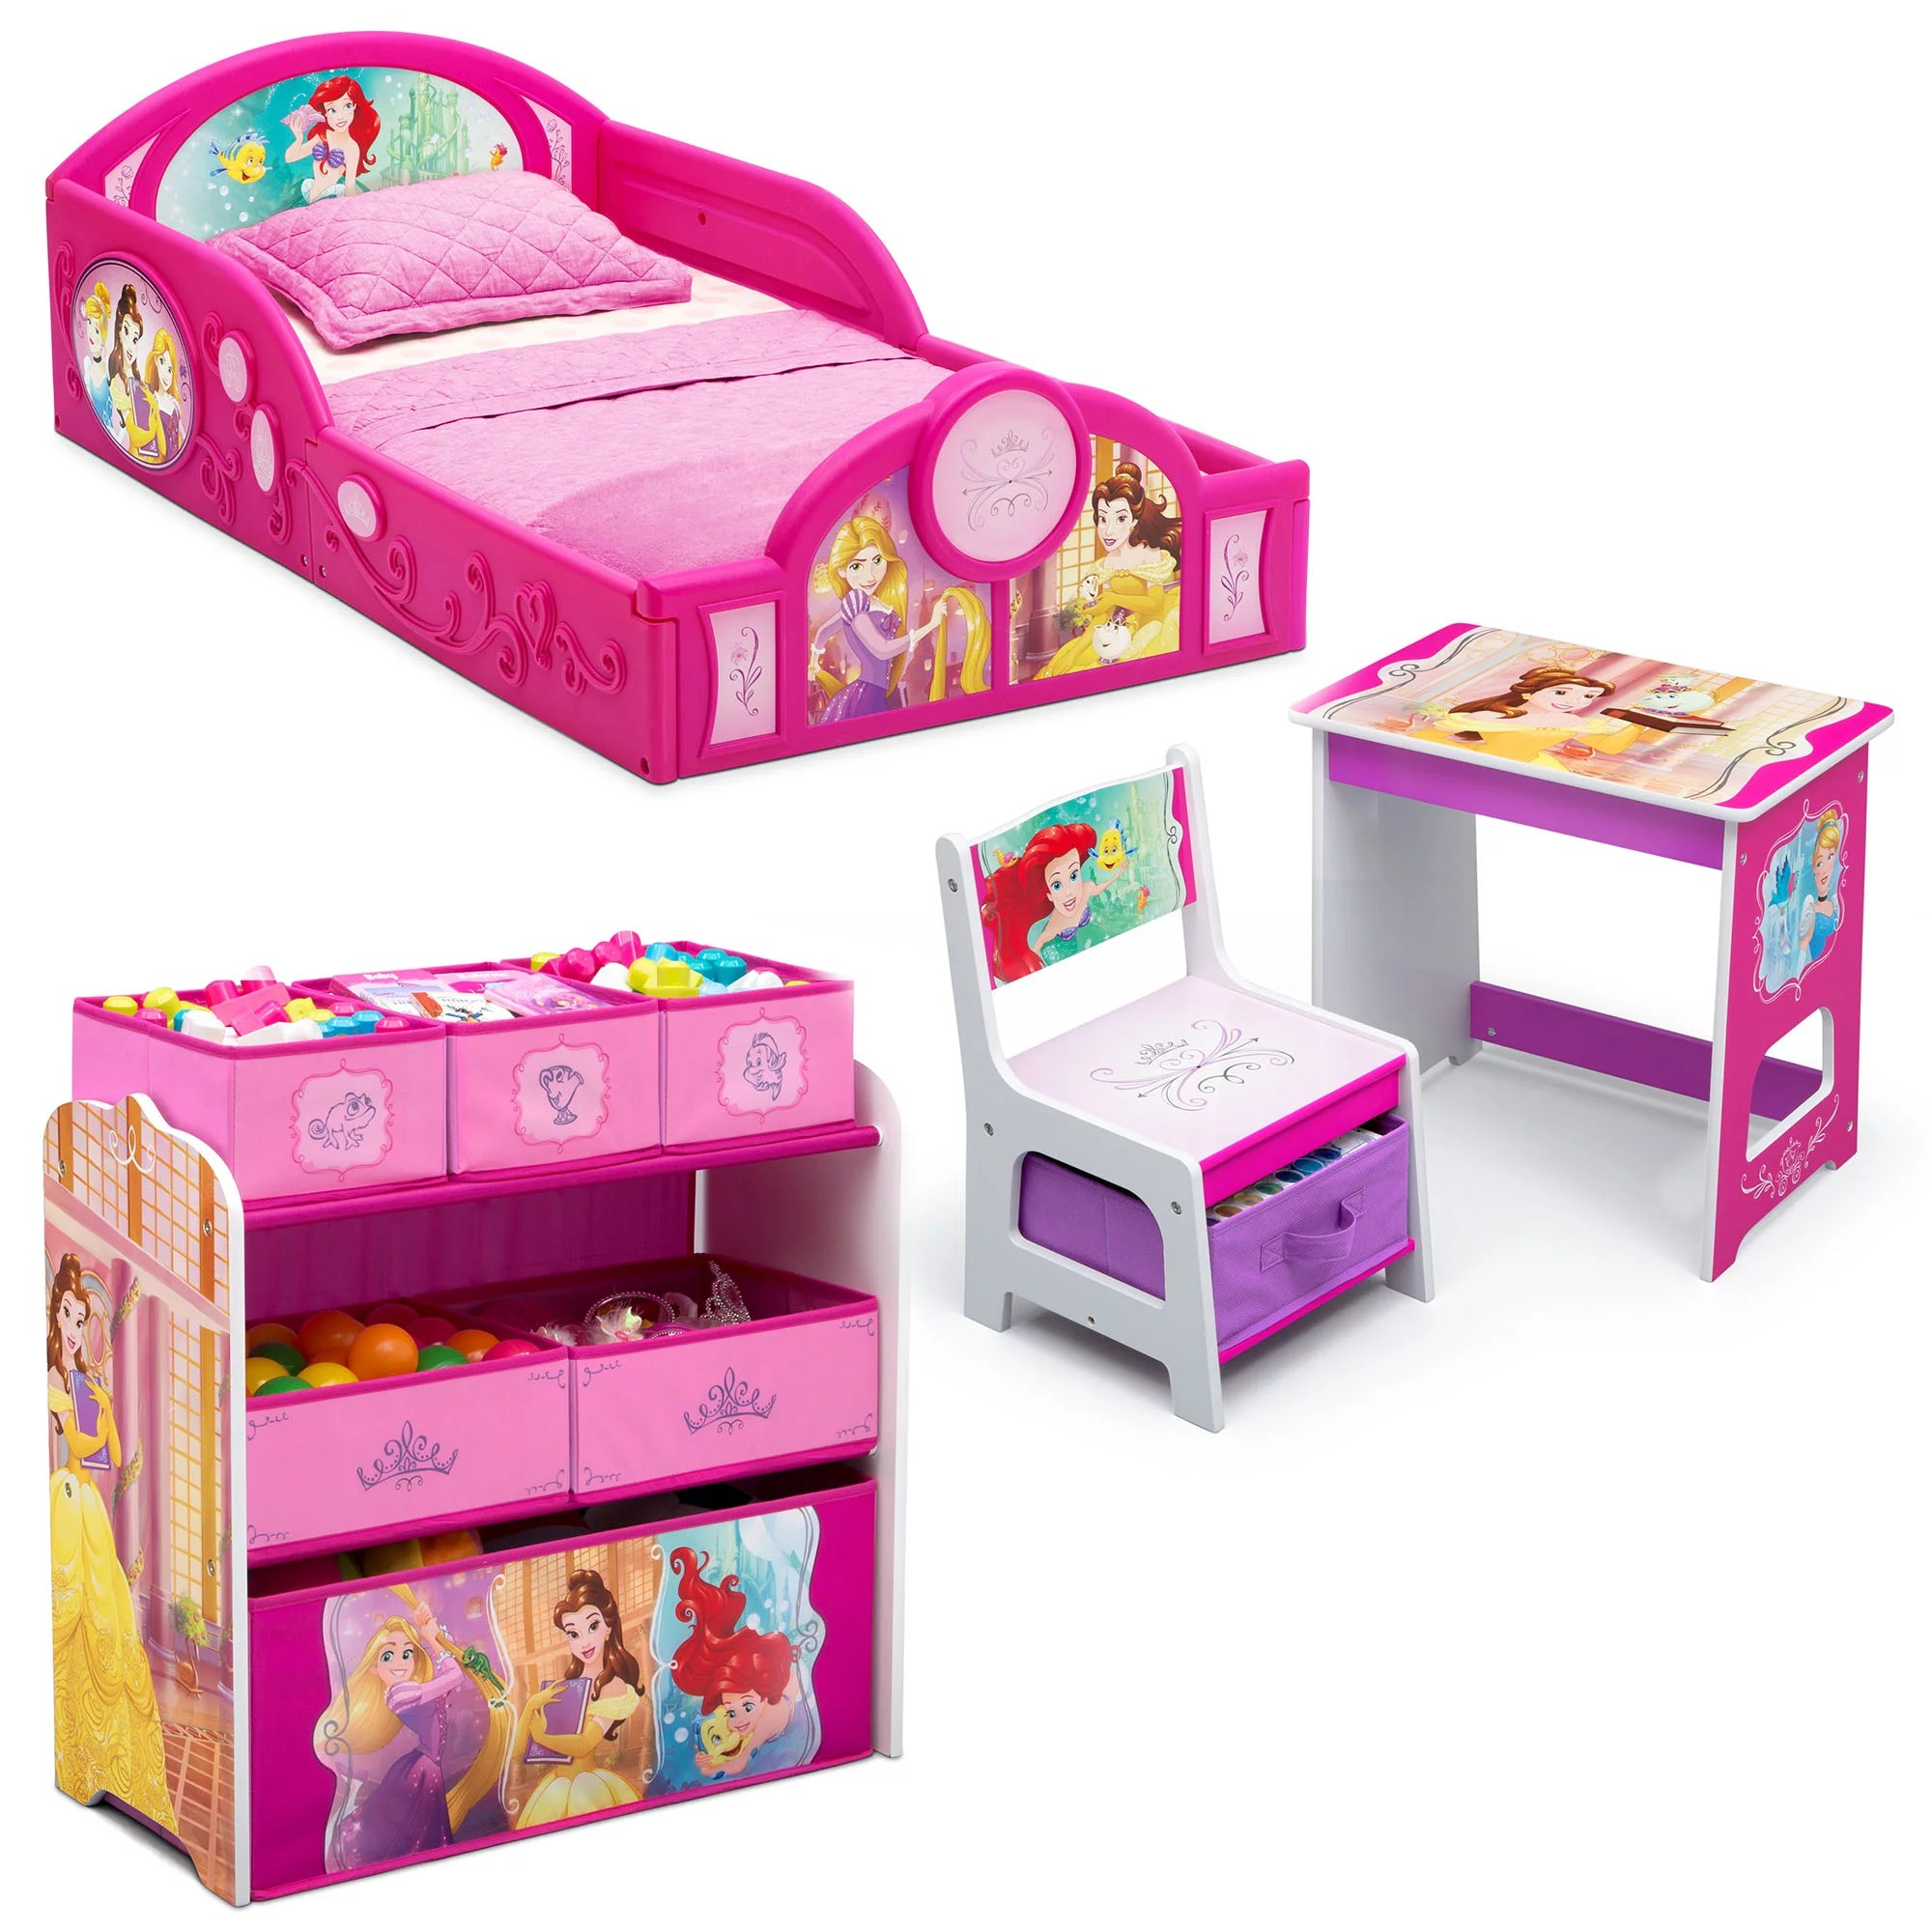 Disney Princess 4 Piece Room In A Box Bedroom Set By Delta Children Includes Sleep Play Toddler Bed 6 Bin Design Store Toy Organizer And Desk With Chair Walmart Com Walmart Com